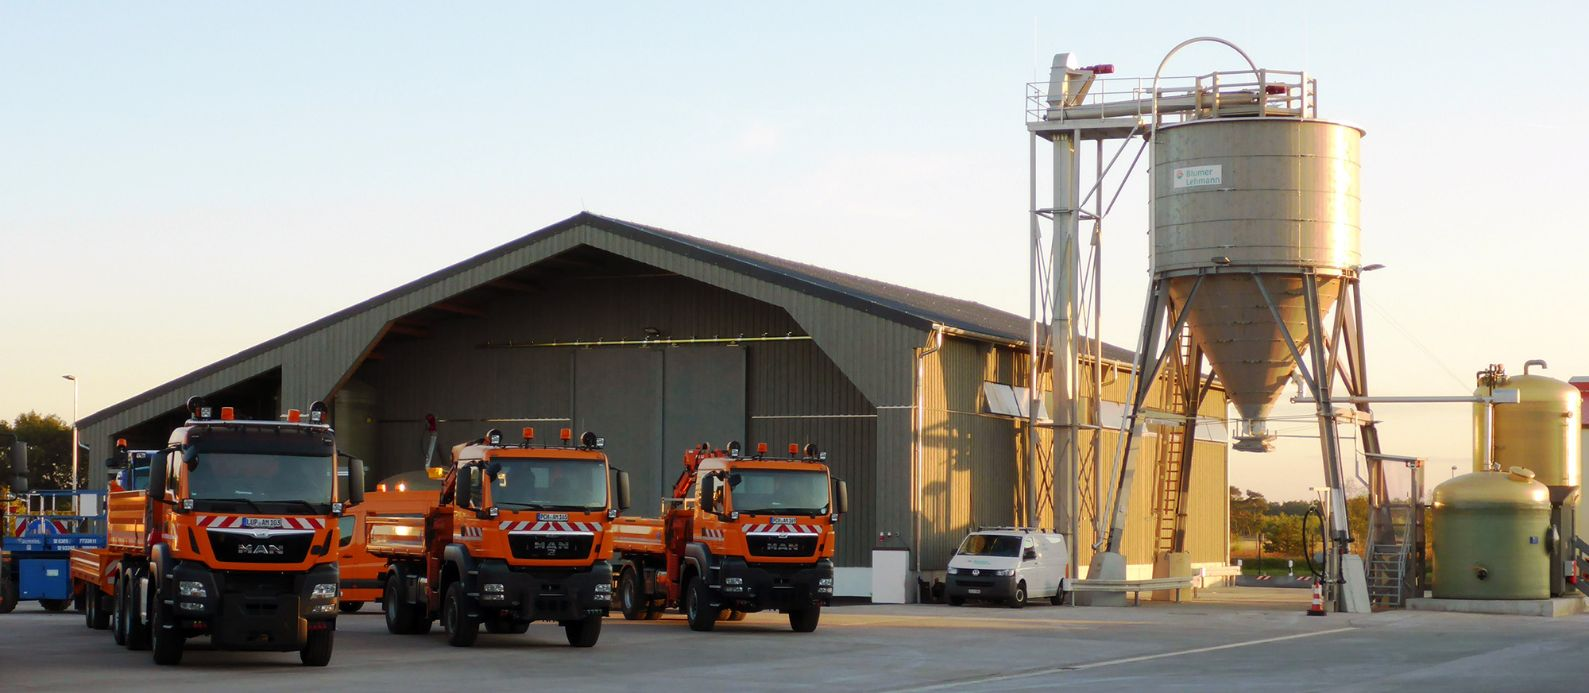 Complete facility in Fahrbinde (DE), comprising a storage depot, a timber silo and a brine facility, with three winter service vehicles parked in front